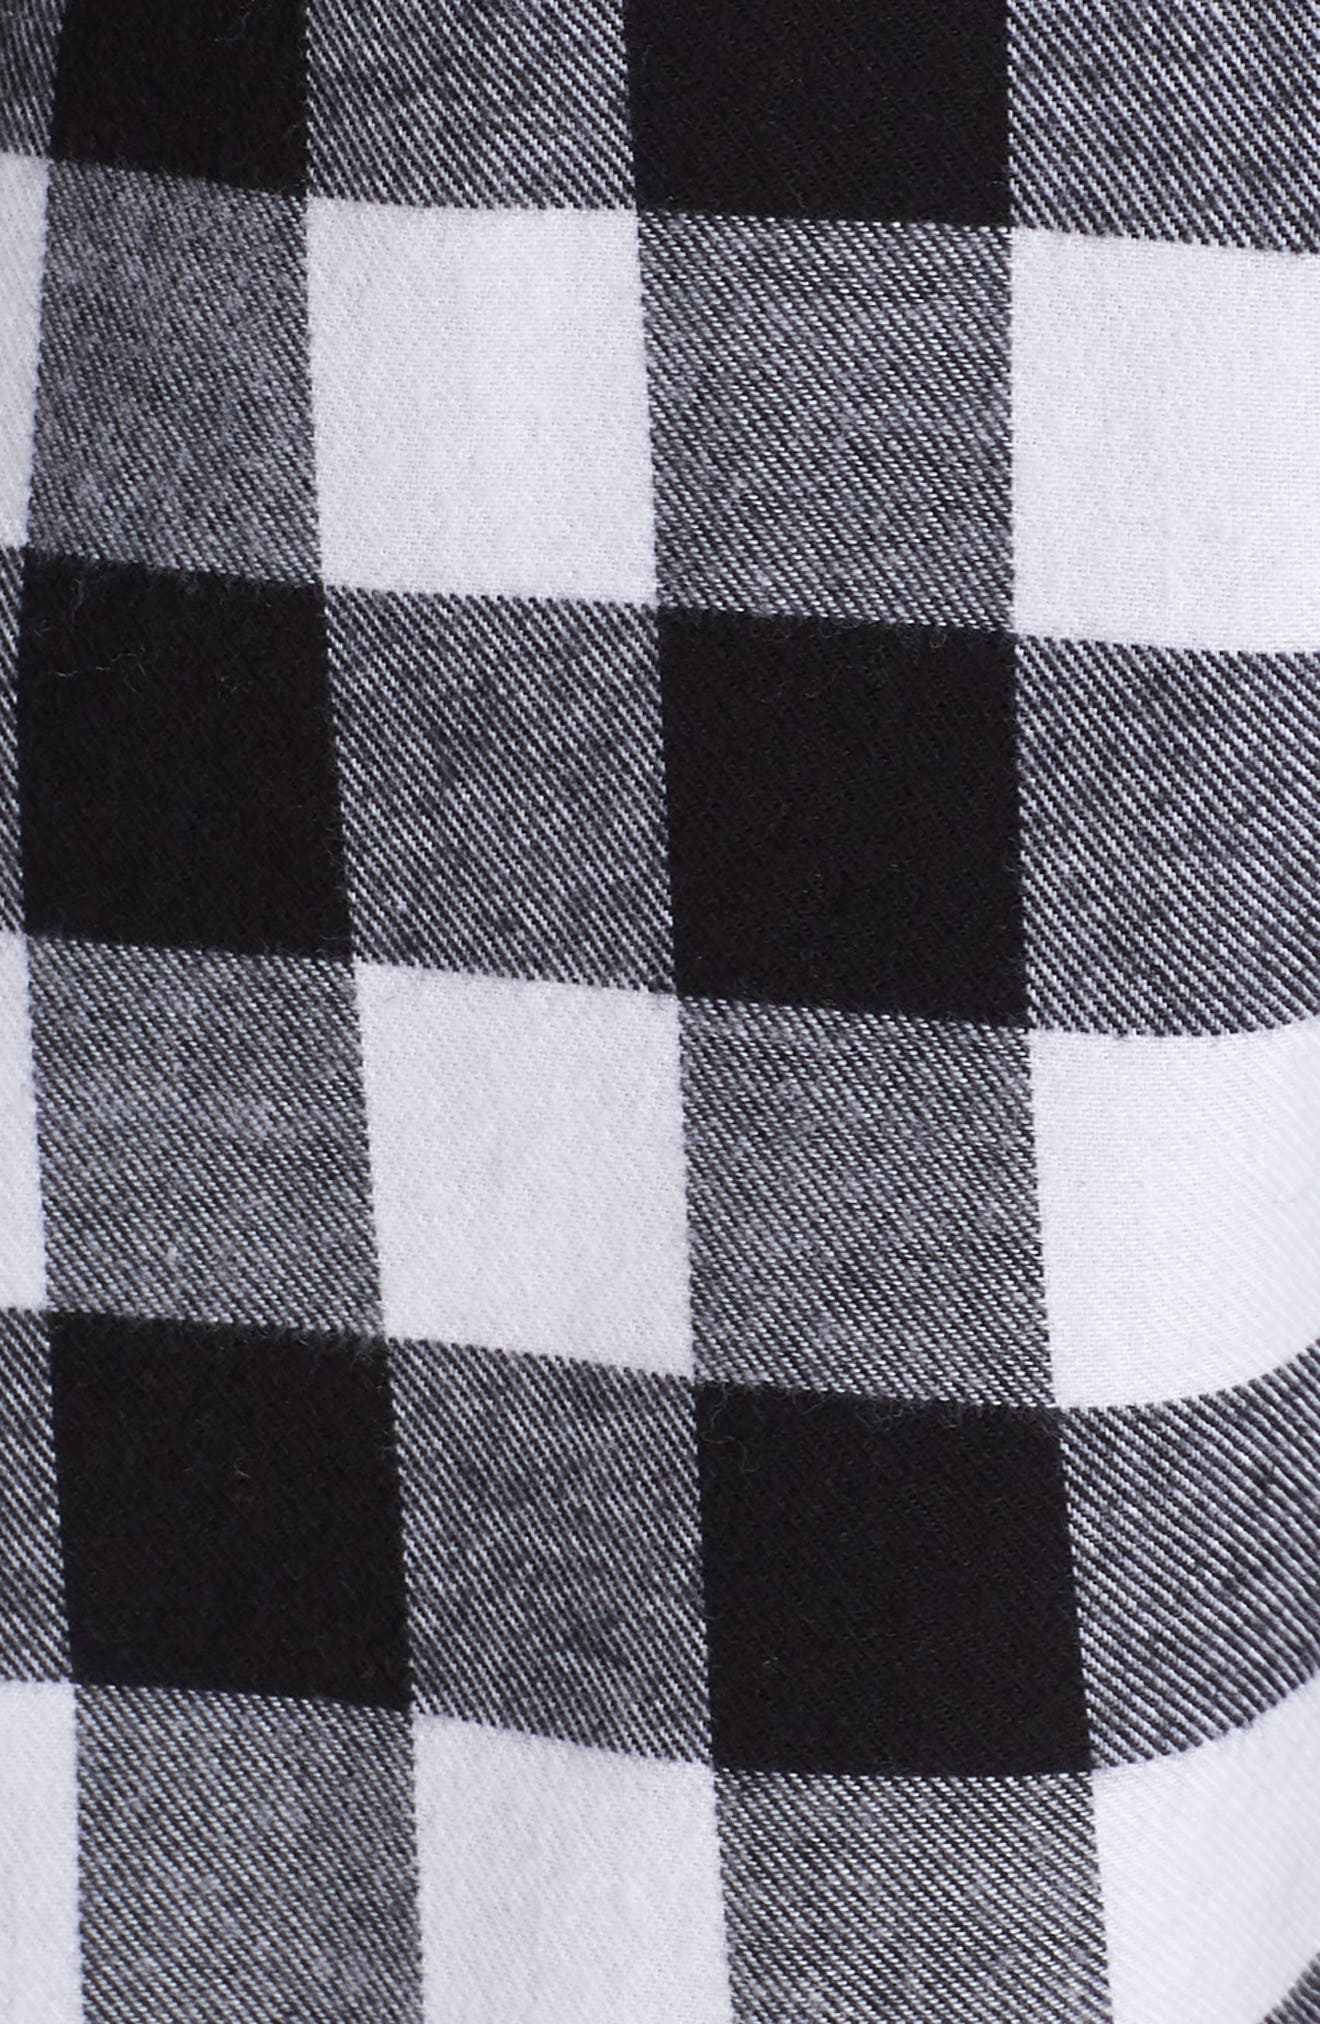 Flannel Nightshirt,                             Alternate thumbnail 5, color,                             002